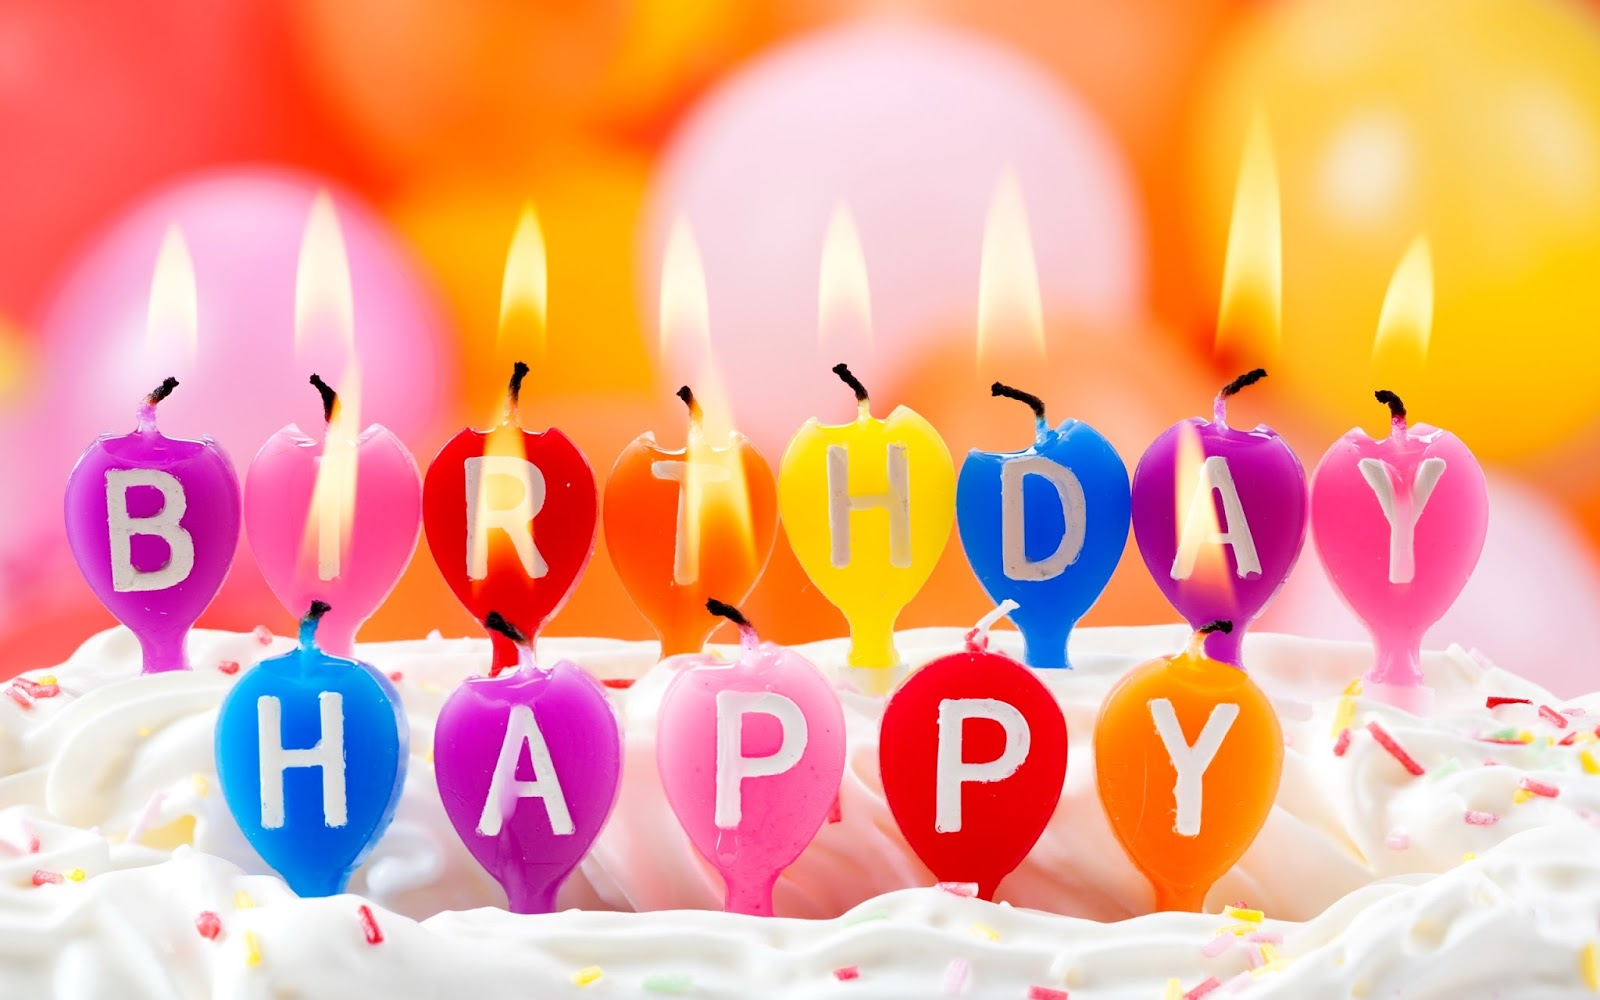 happy birthday wishes card for facebook ; birthday-cards-to-share-on-facebook-friends-sweet-and-cute-birthdays-wish-to-best-friend-video-greetings-wishes-with-music-fire-colorful-alphabets